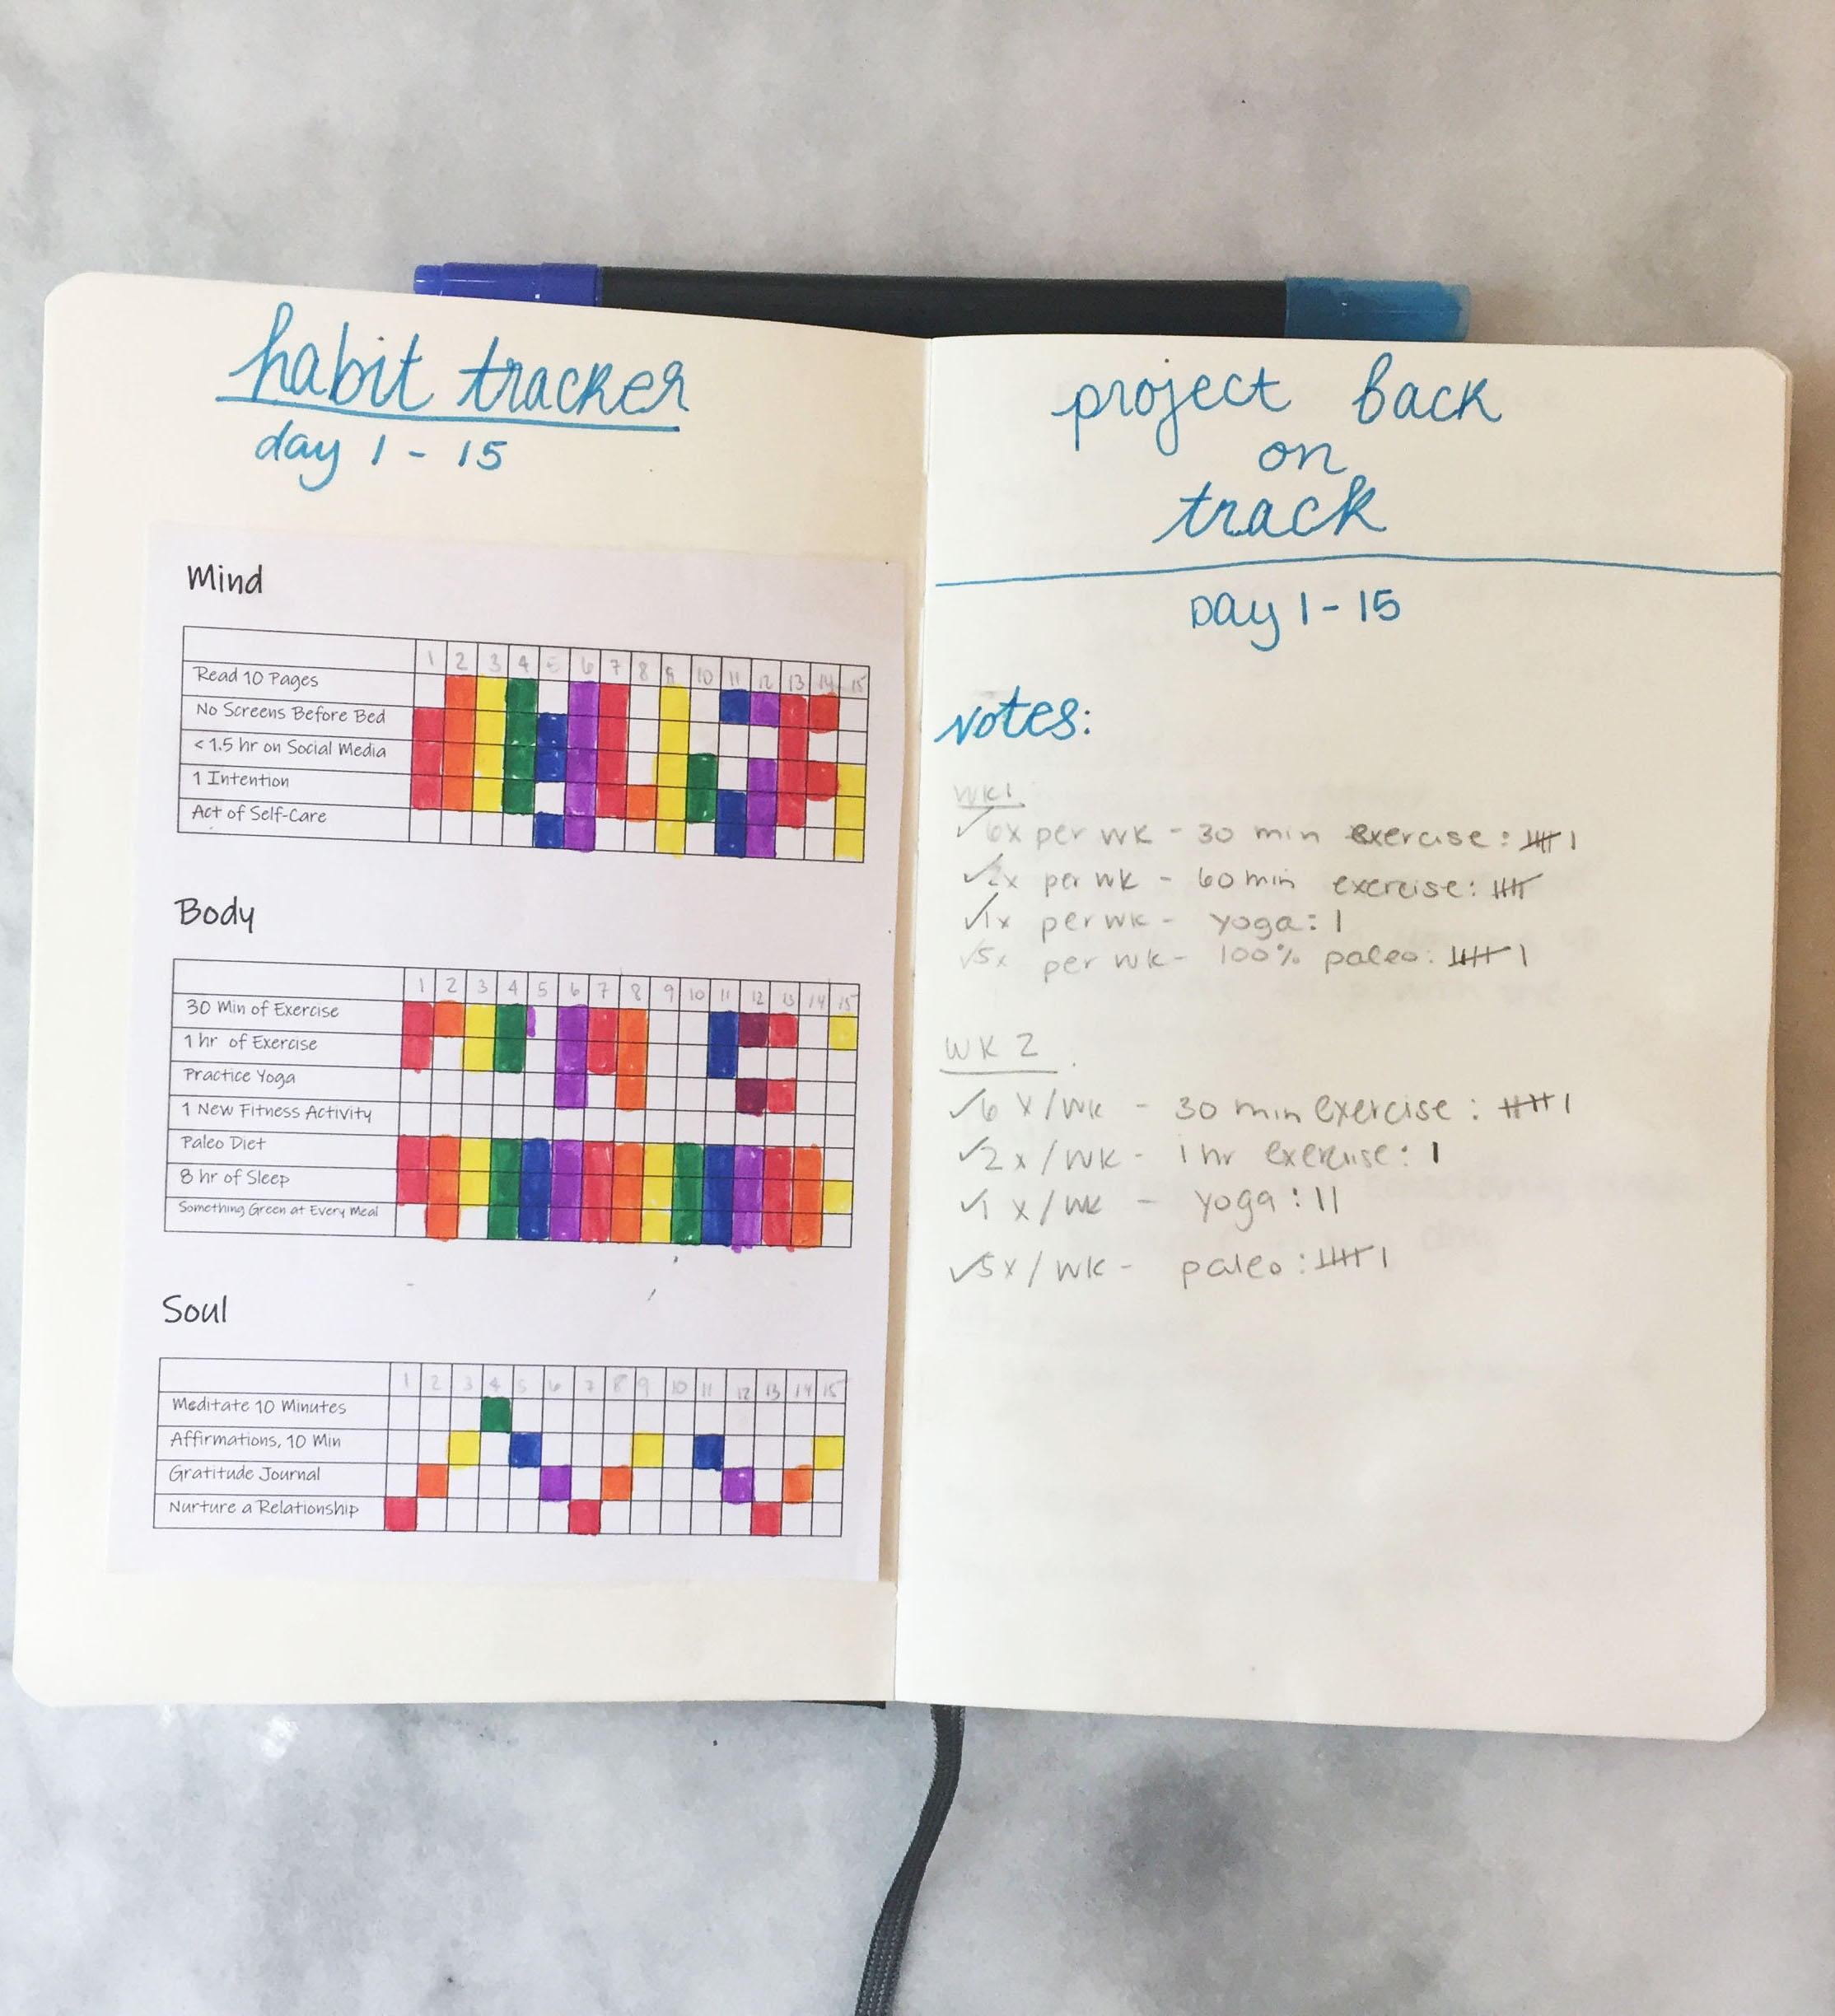 Project Back on Track - Habit Tracker | #projectbackontrack | Laurel and Iron